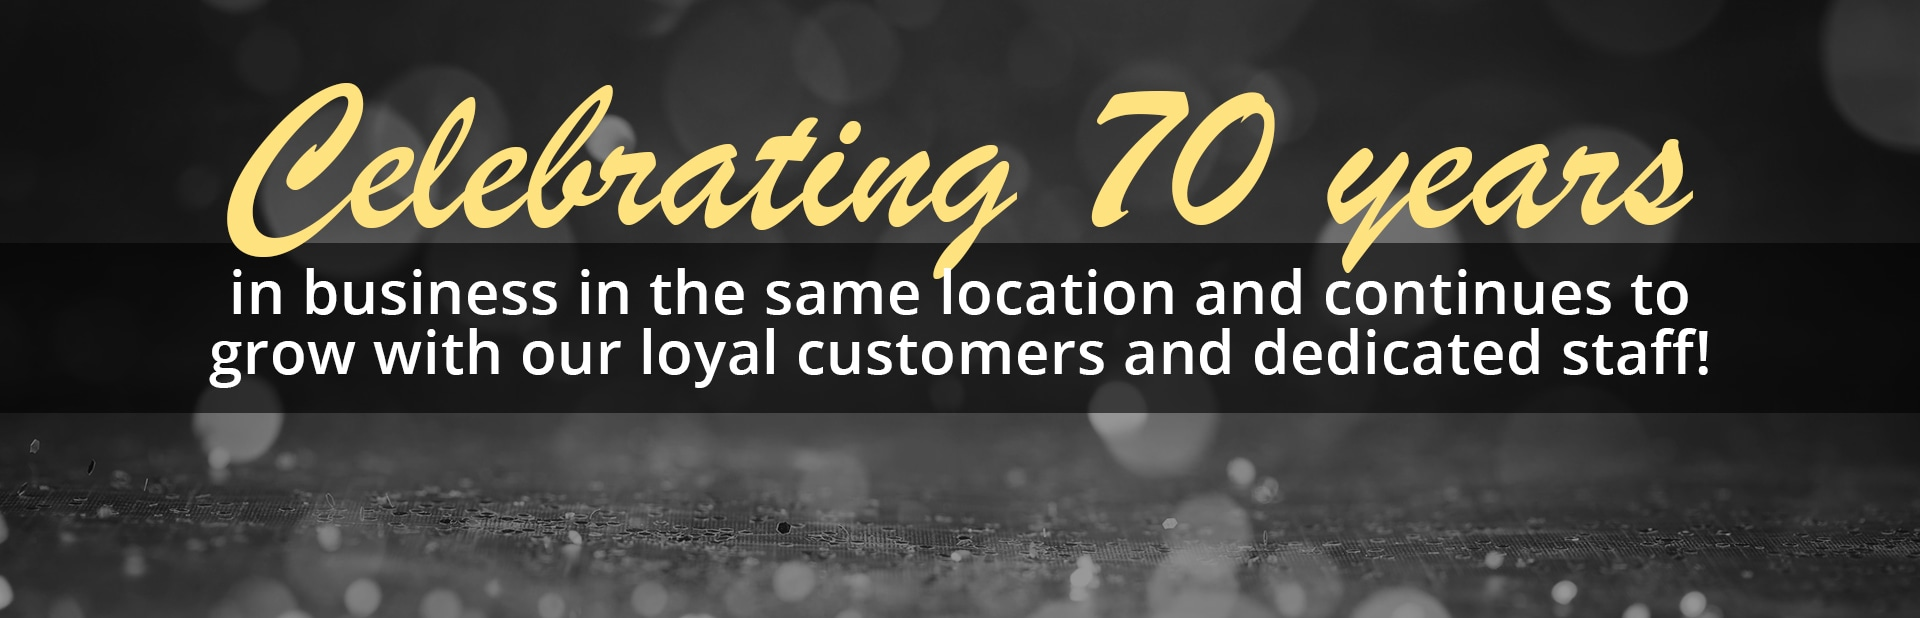 Beau Bairu0027s Lawn And Garden Is Celebrating 70 Years In Business In The Same  Location And Continues